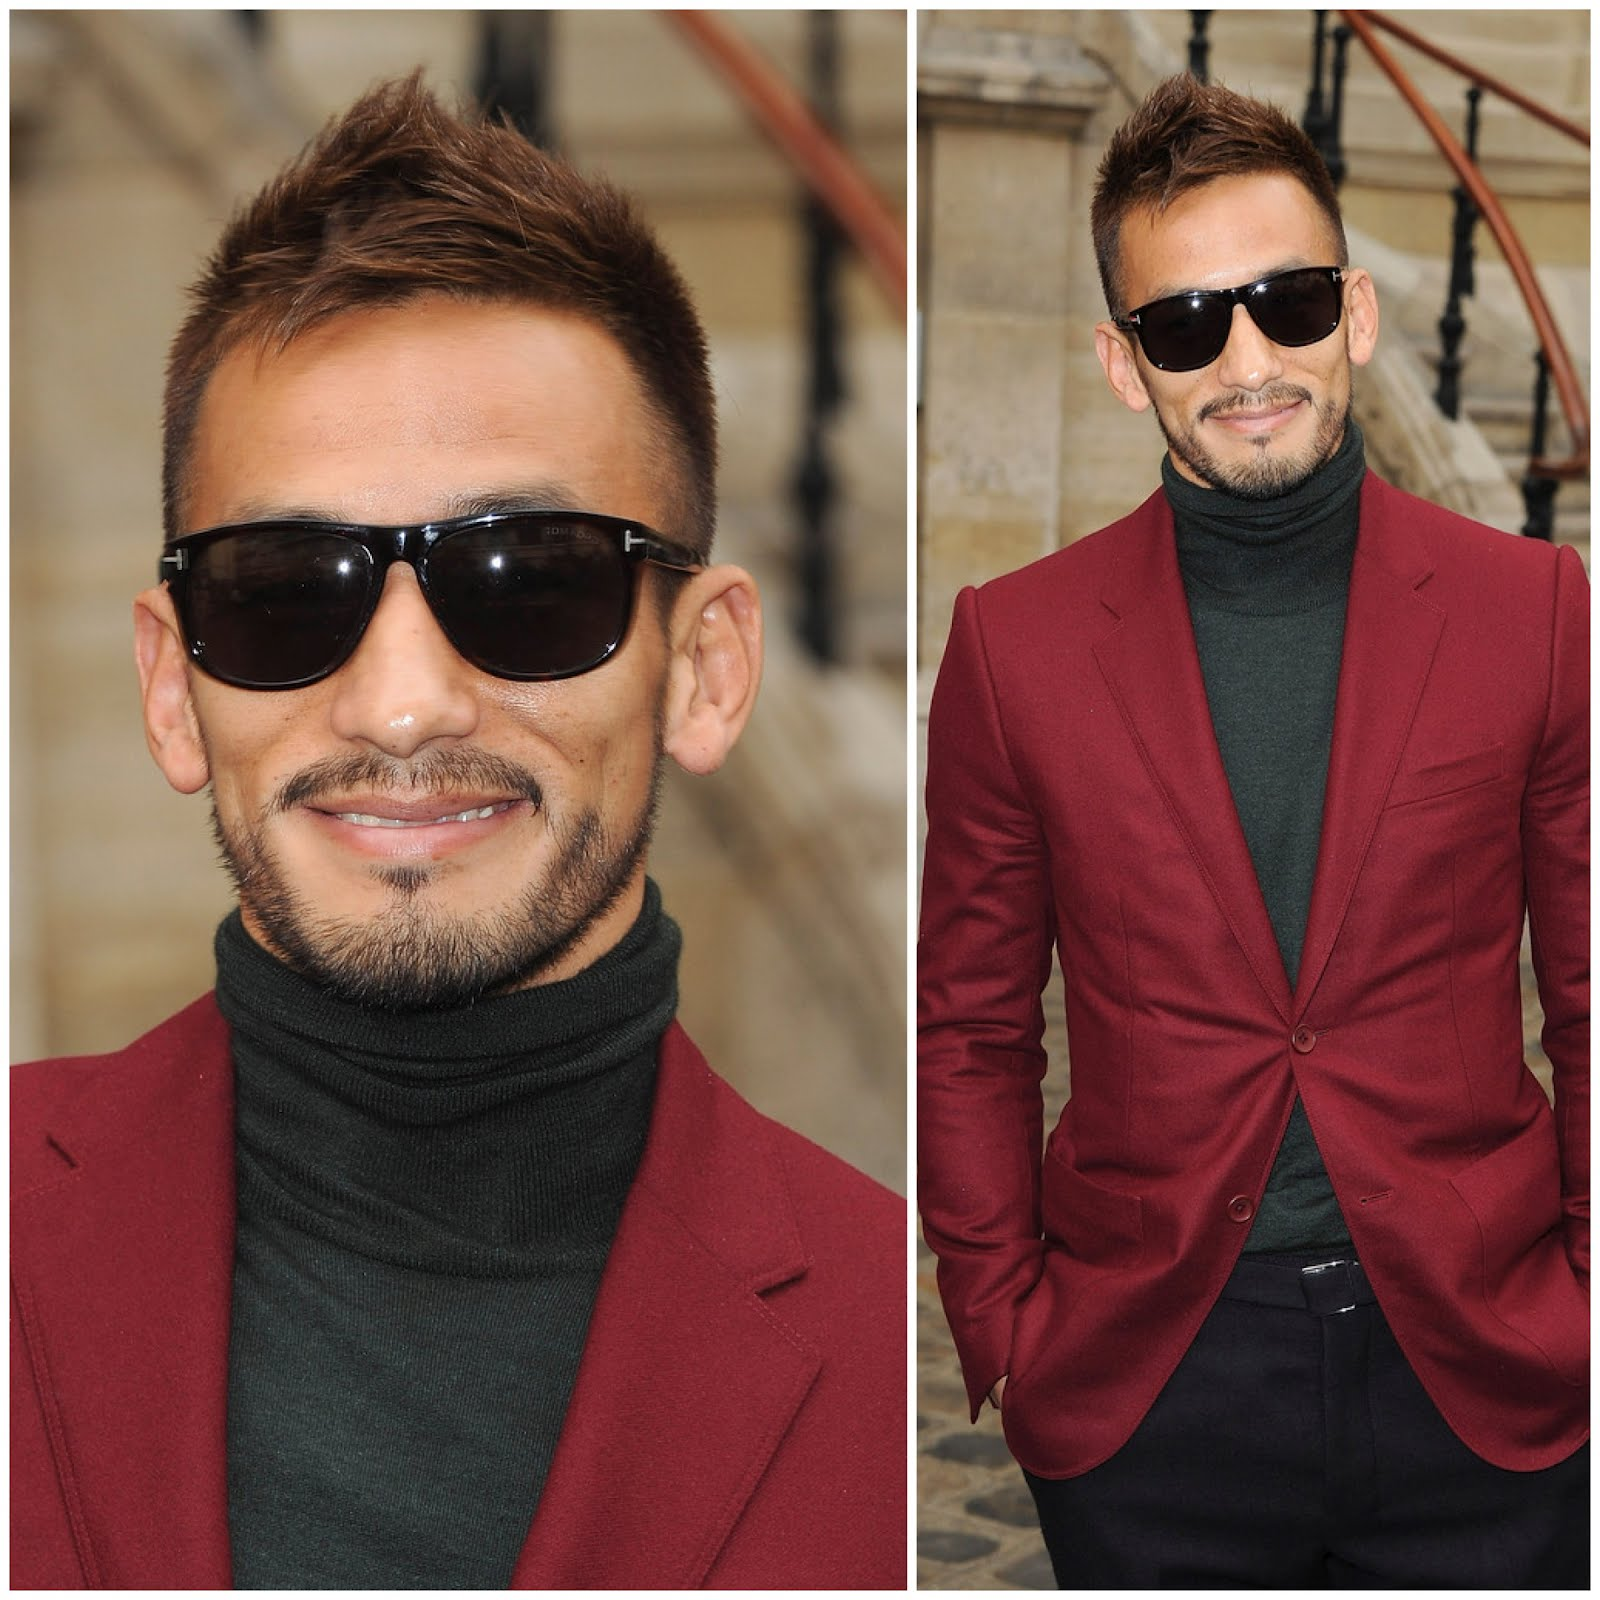 00O00 London Menswear Blog Hidetoshi Nakata in Balenciaga Paris Fashion Week 2012